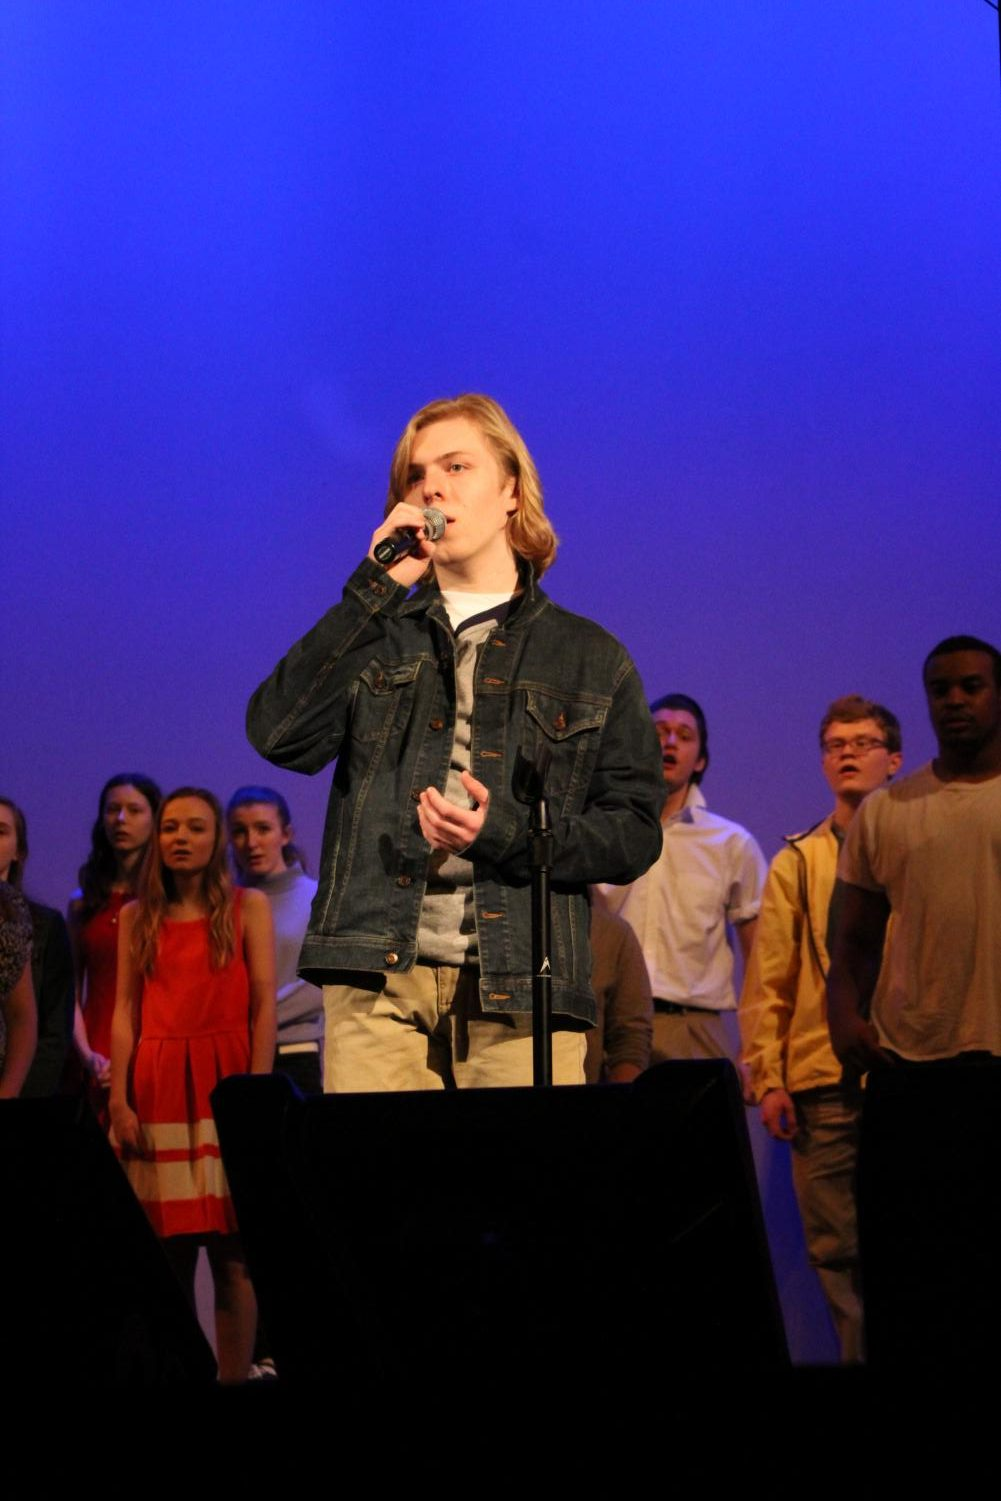 Matt+Johnson%2C+senior%2C+sings+a+solo+during+the+A+Cappella+Concert+Choir%27s+performance+of+West+Side+Story.+